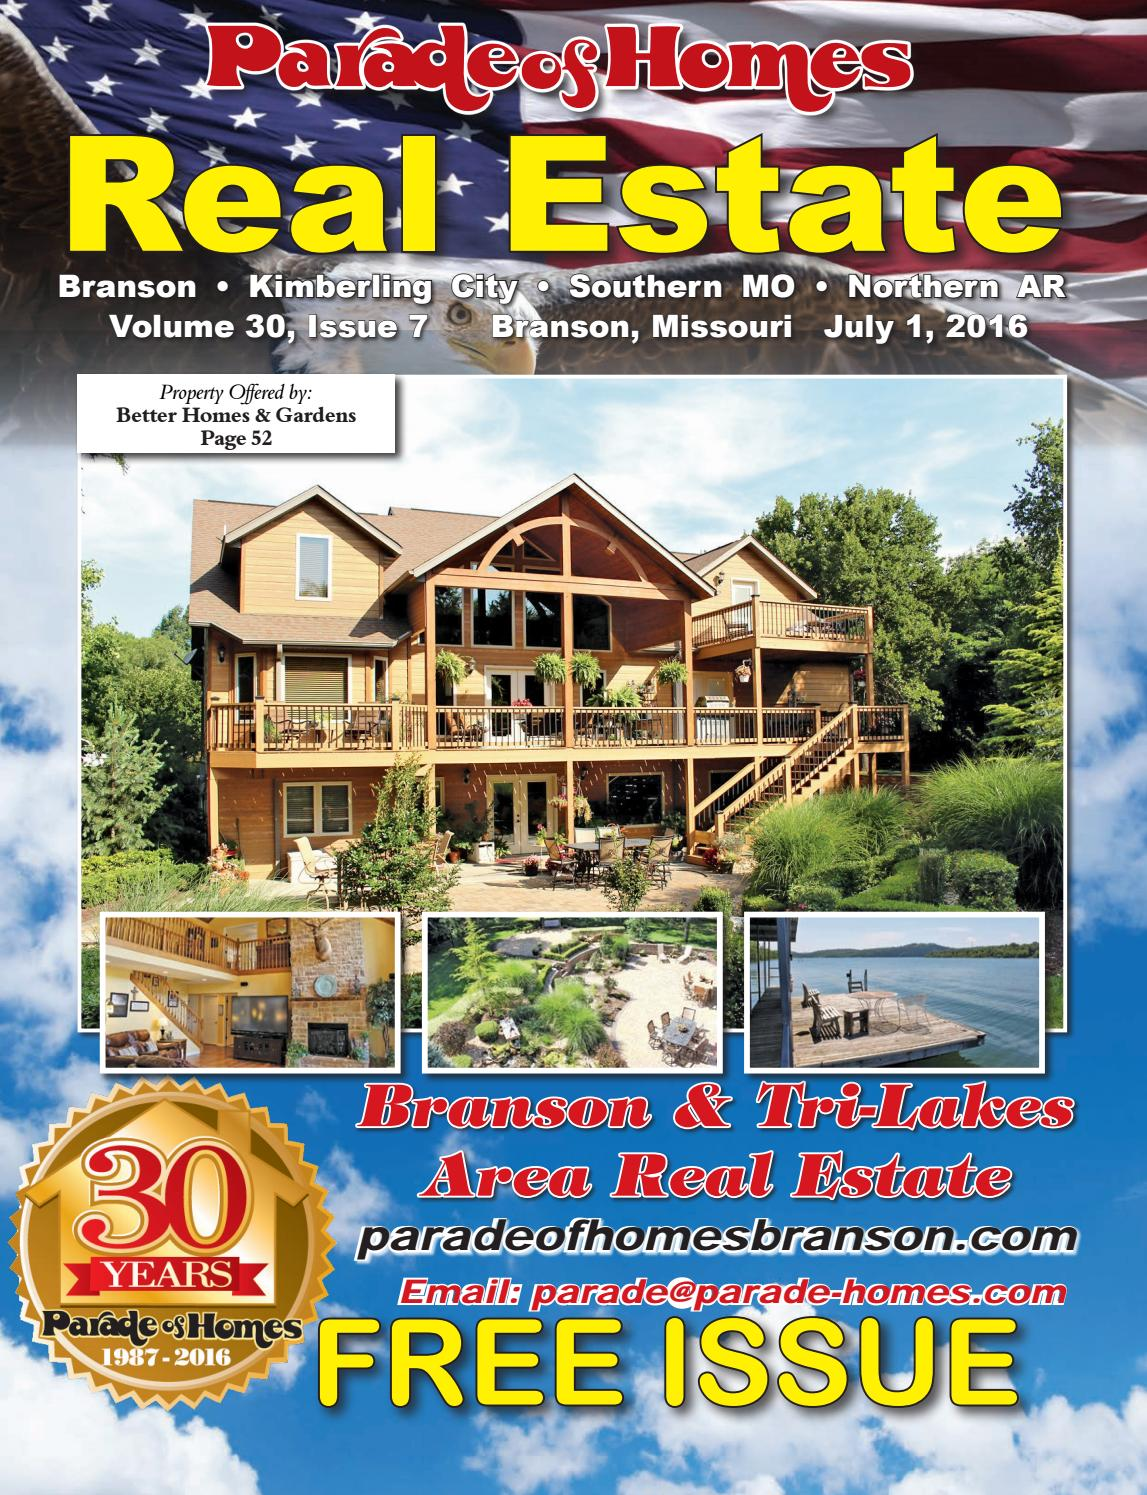 Parade Of Homes July 2016 Digital Issue By Parade Of Homes Issuu